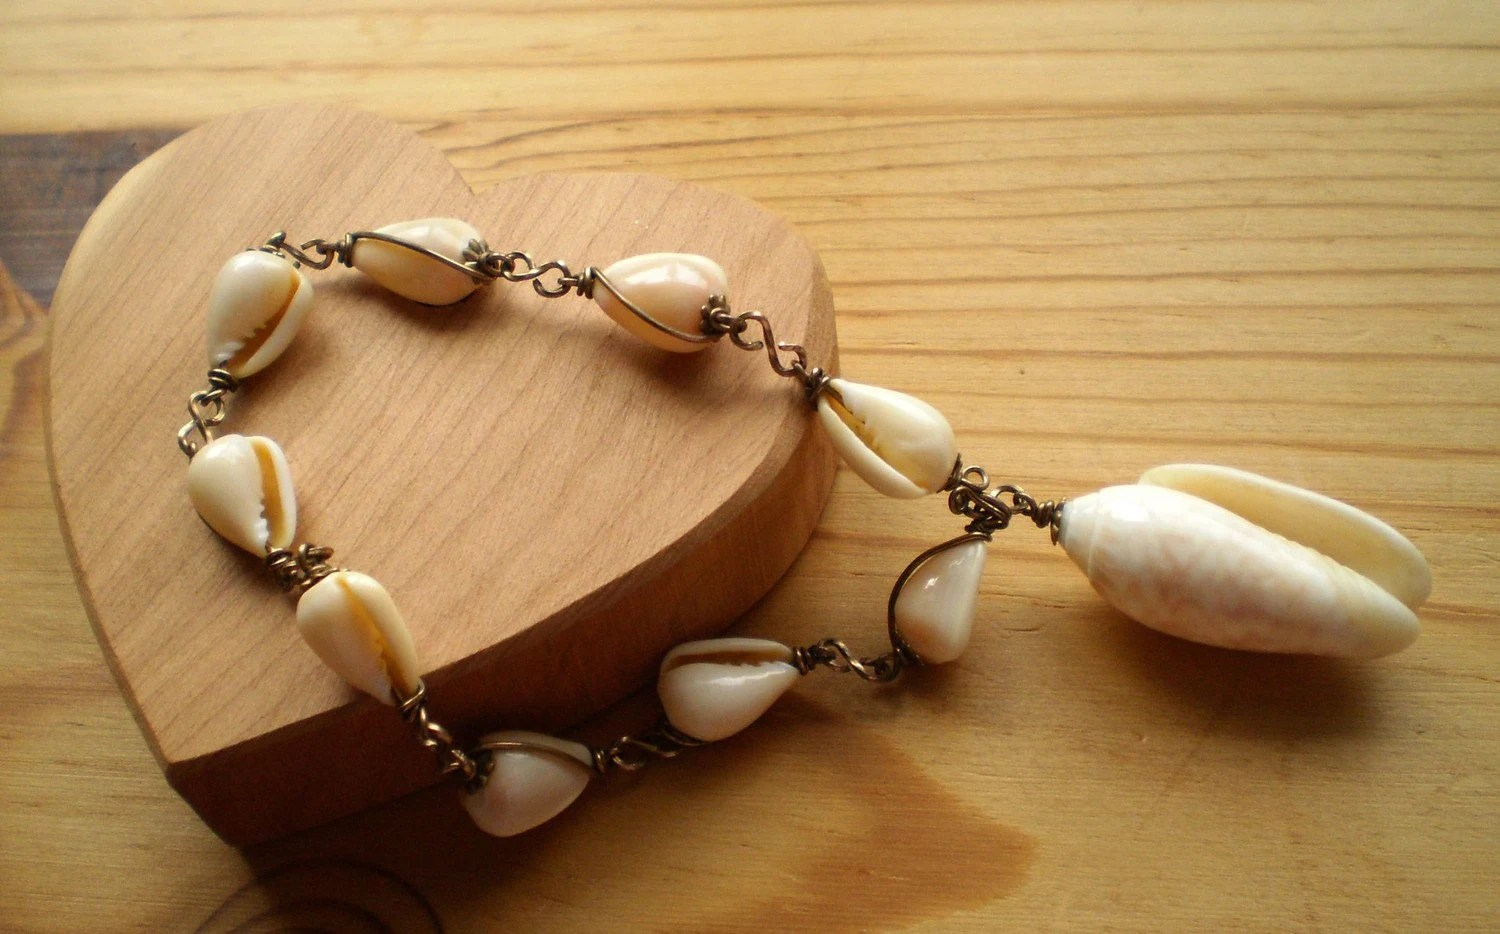 Vintage Cowrie Cowry Shells Linked with Brass Wire Large Cowrie Cowry Shell Designed to be a Charm Dangler Made in Hawaii Handcrafted Circa 1950s